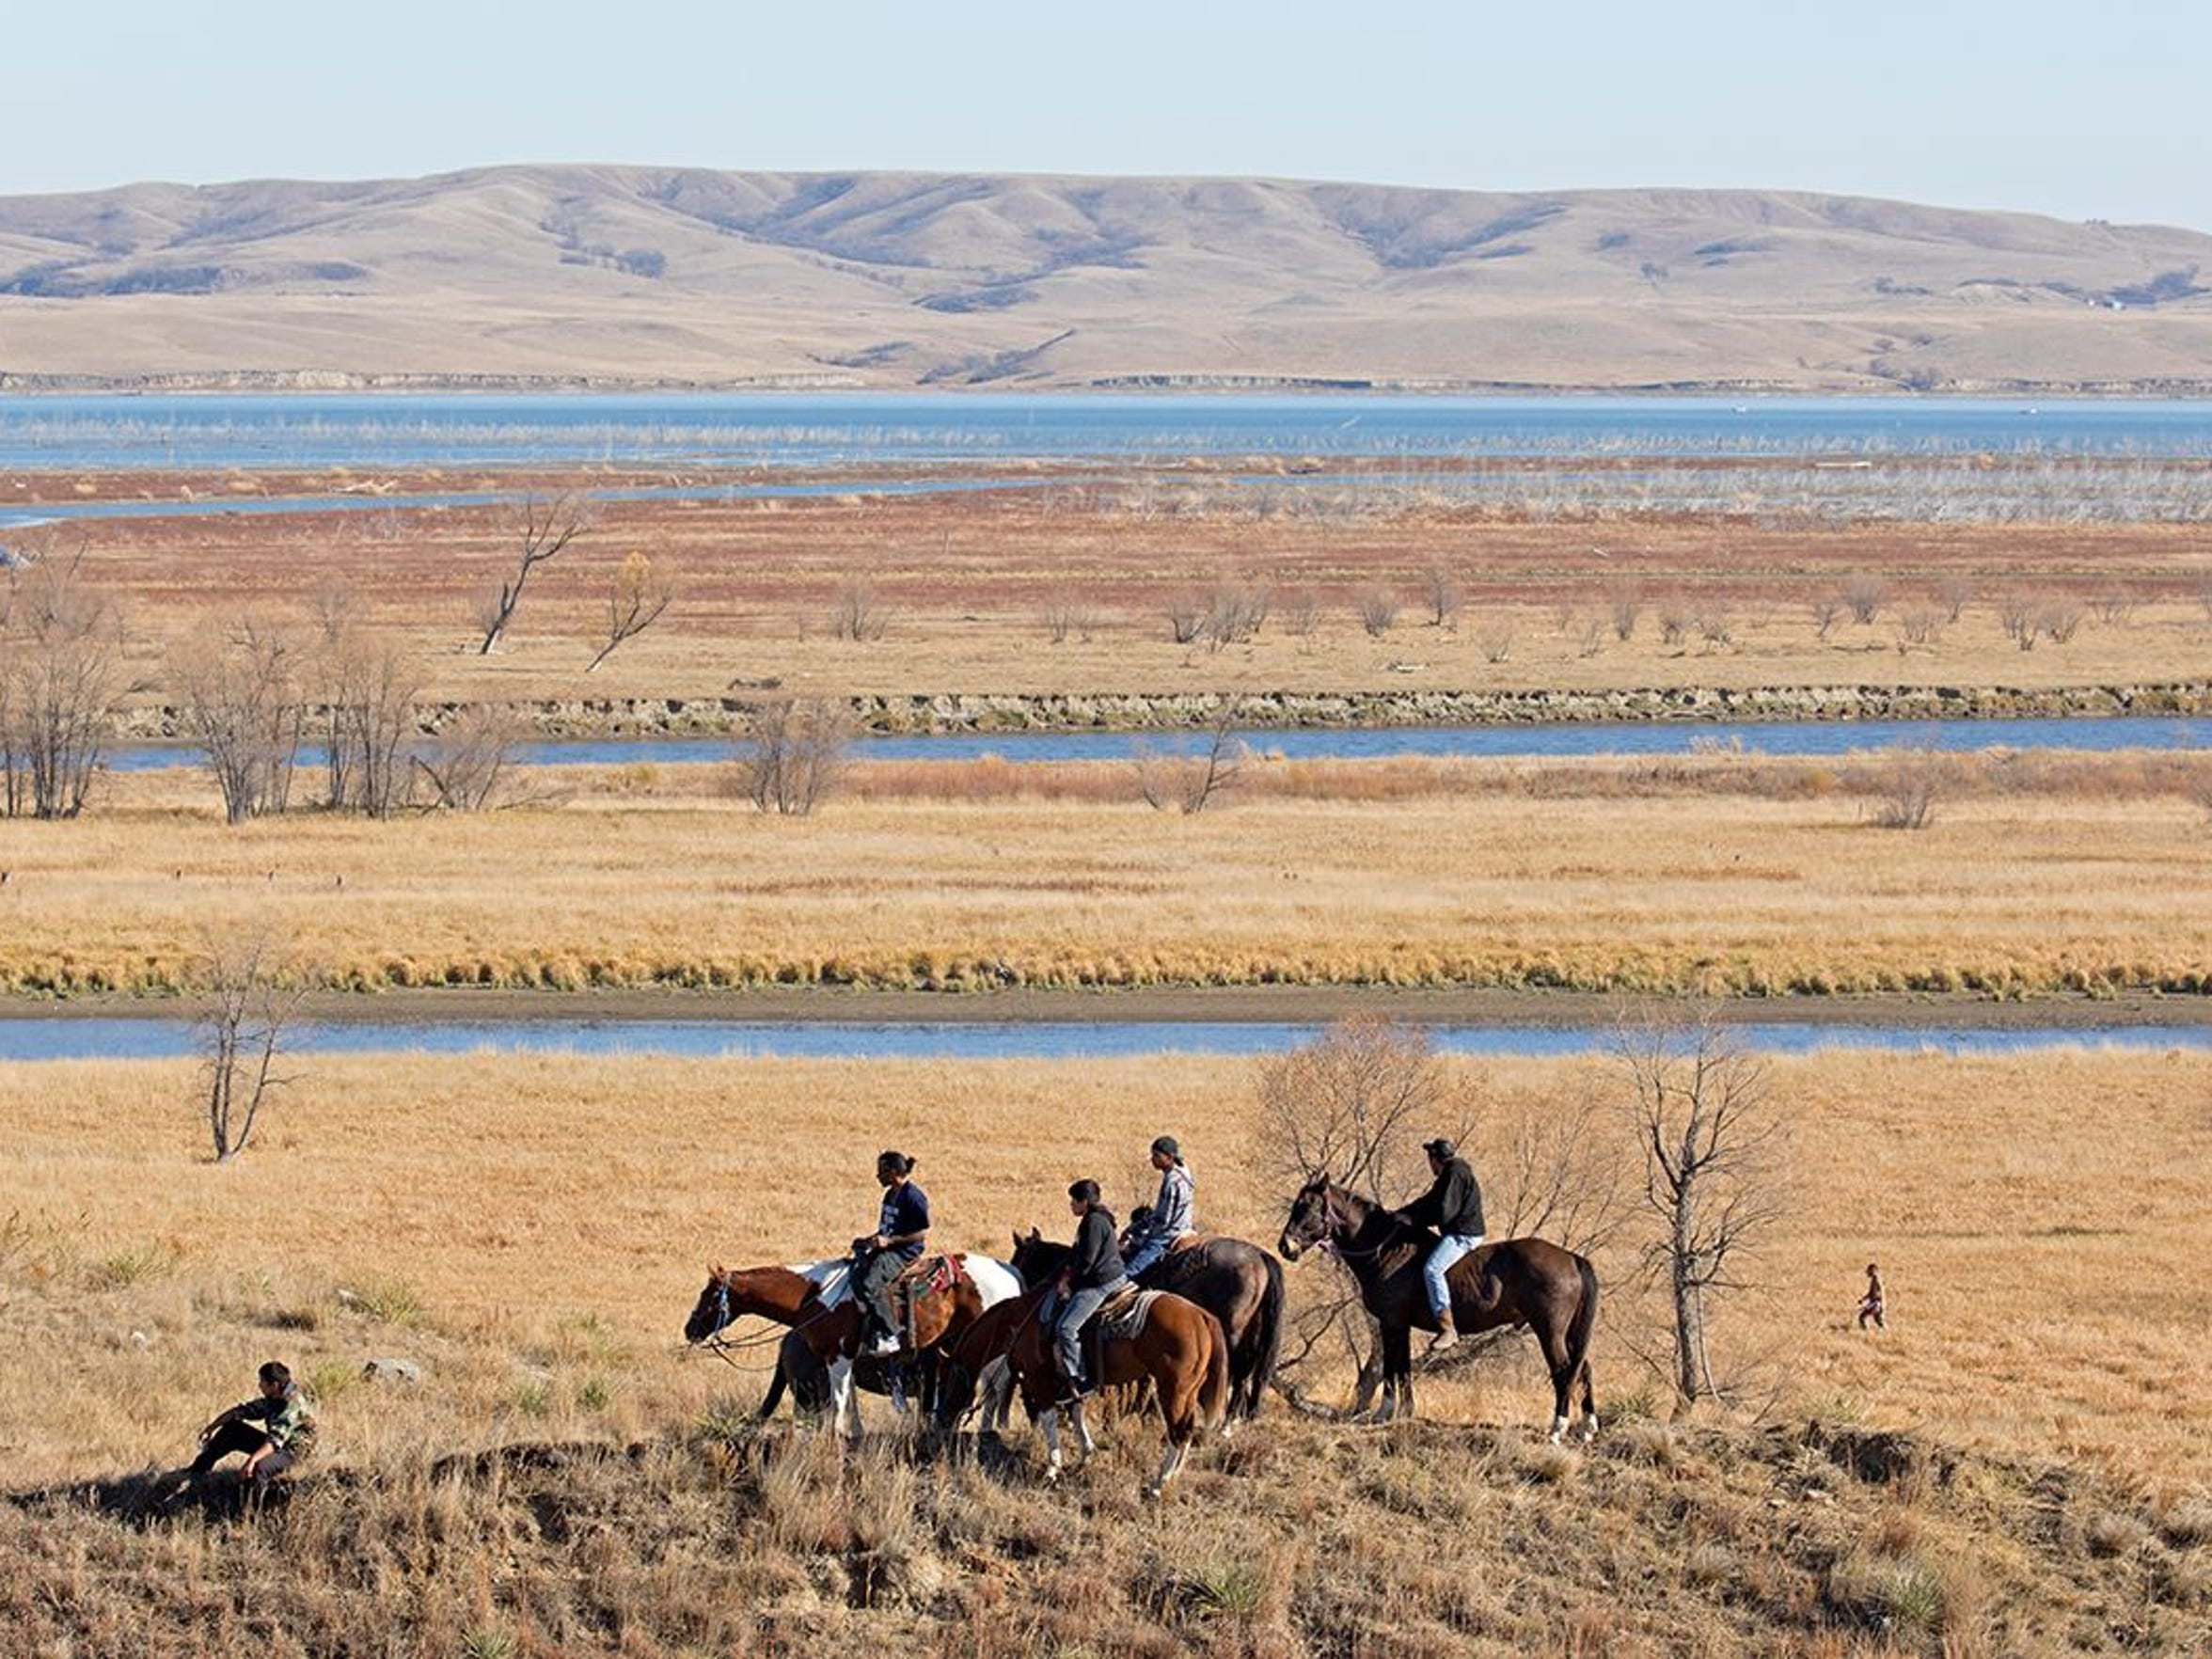 Near The Standing Rock Sioux Tribe Reservation in North